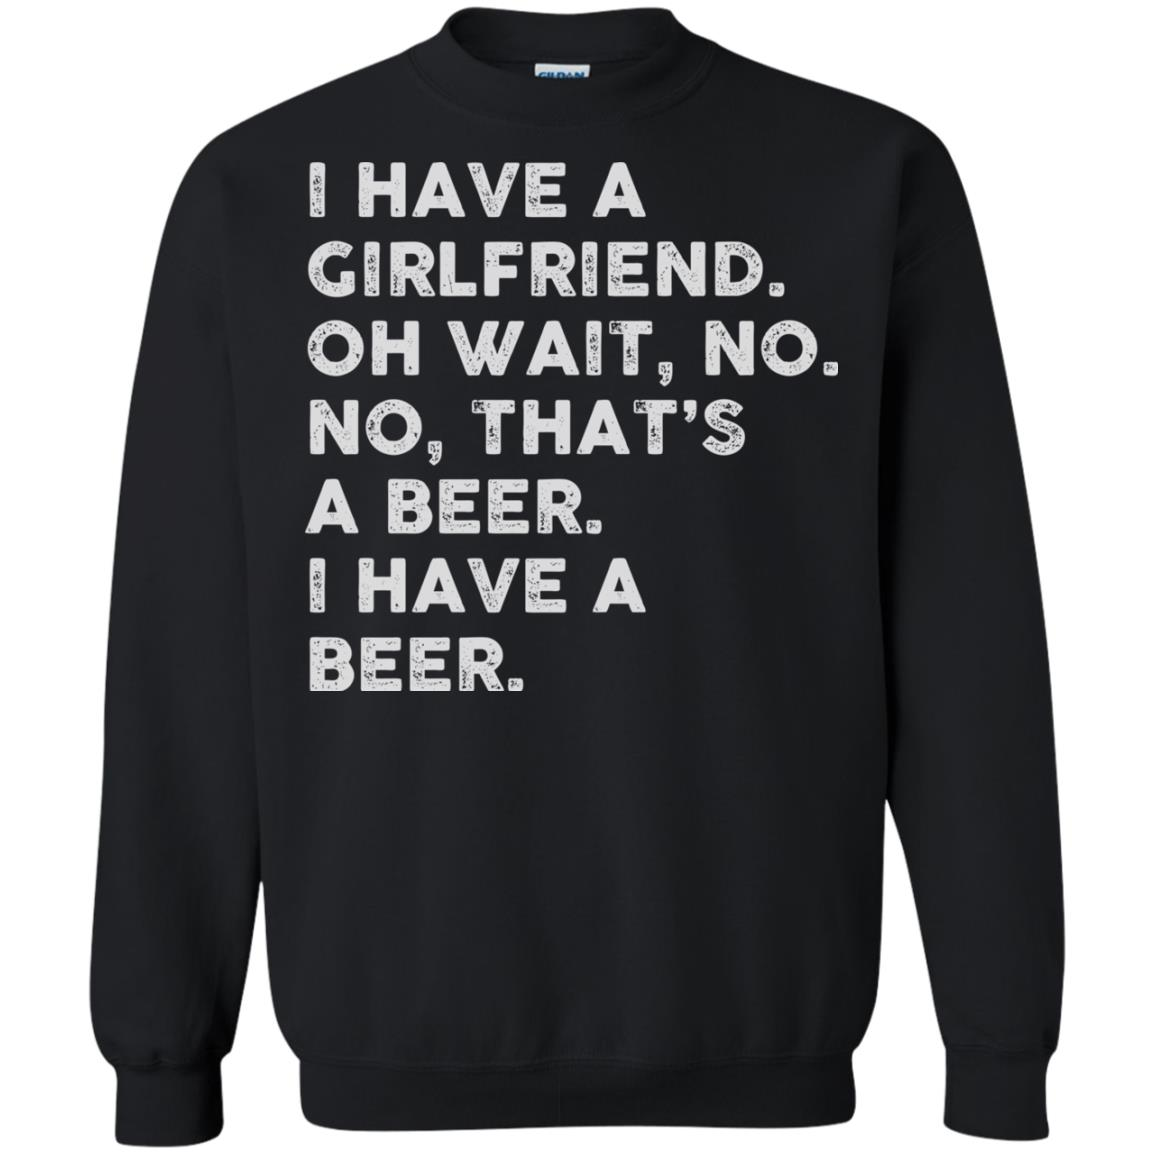 image 2185 - I have a girlfriend oh wait No No that's a beer shirt, hoodie